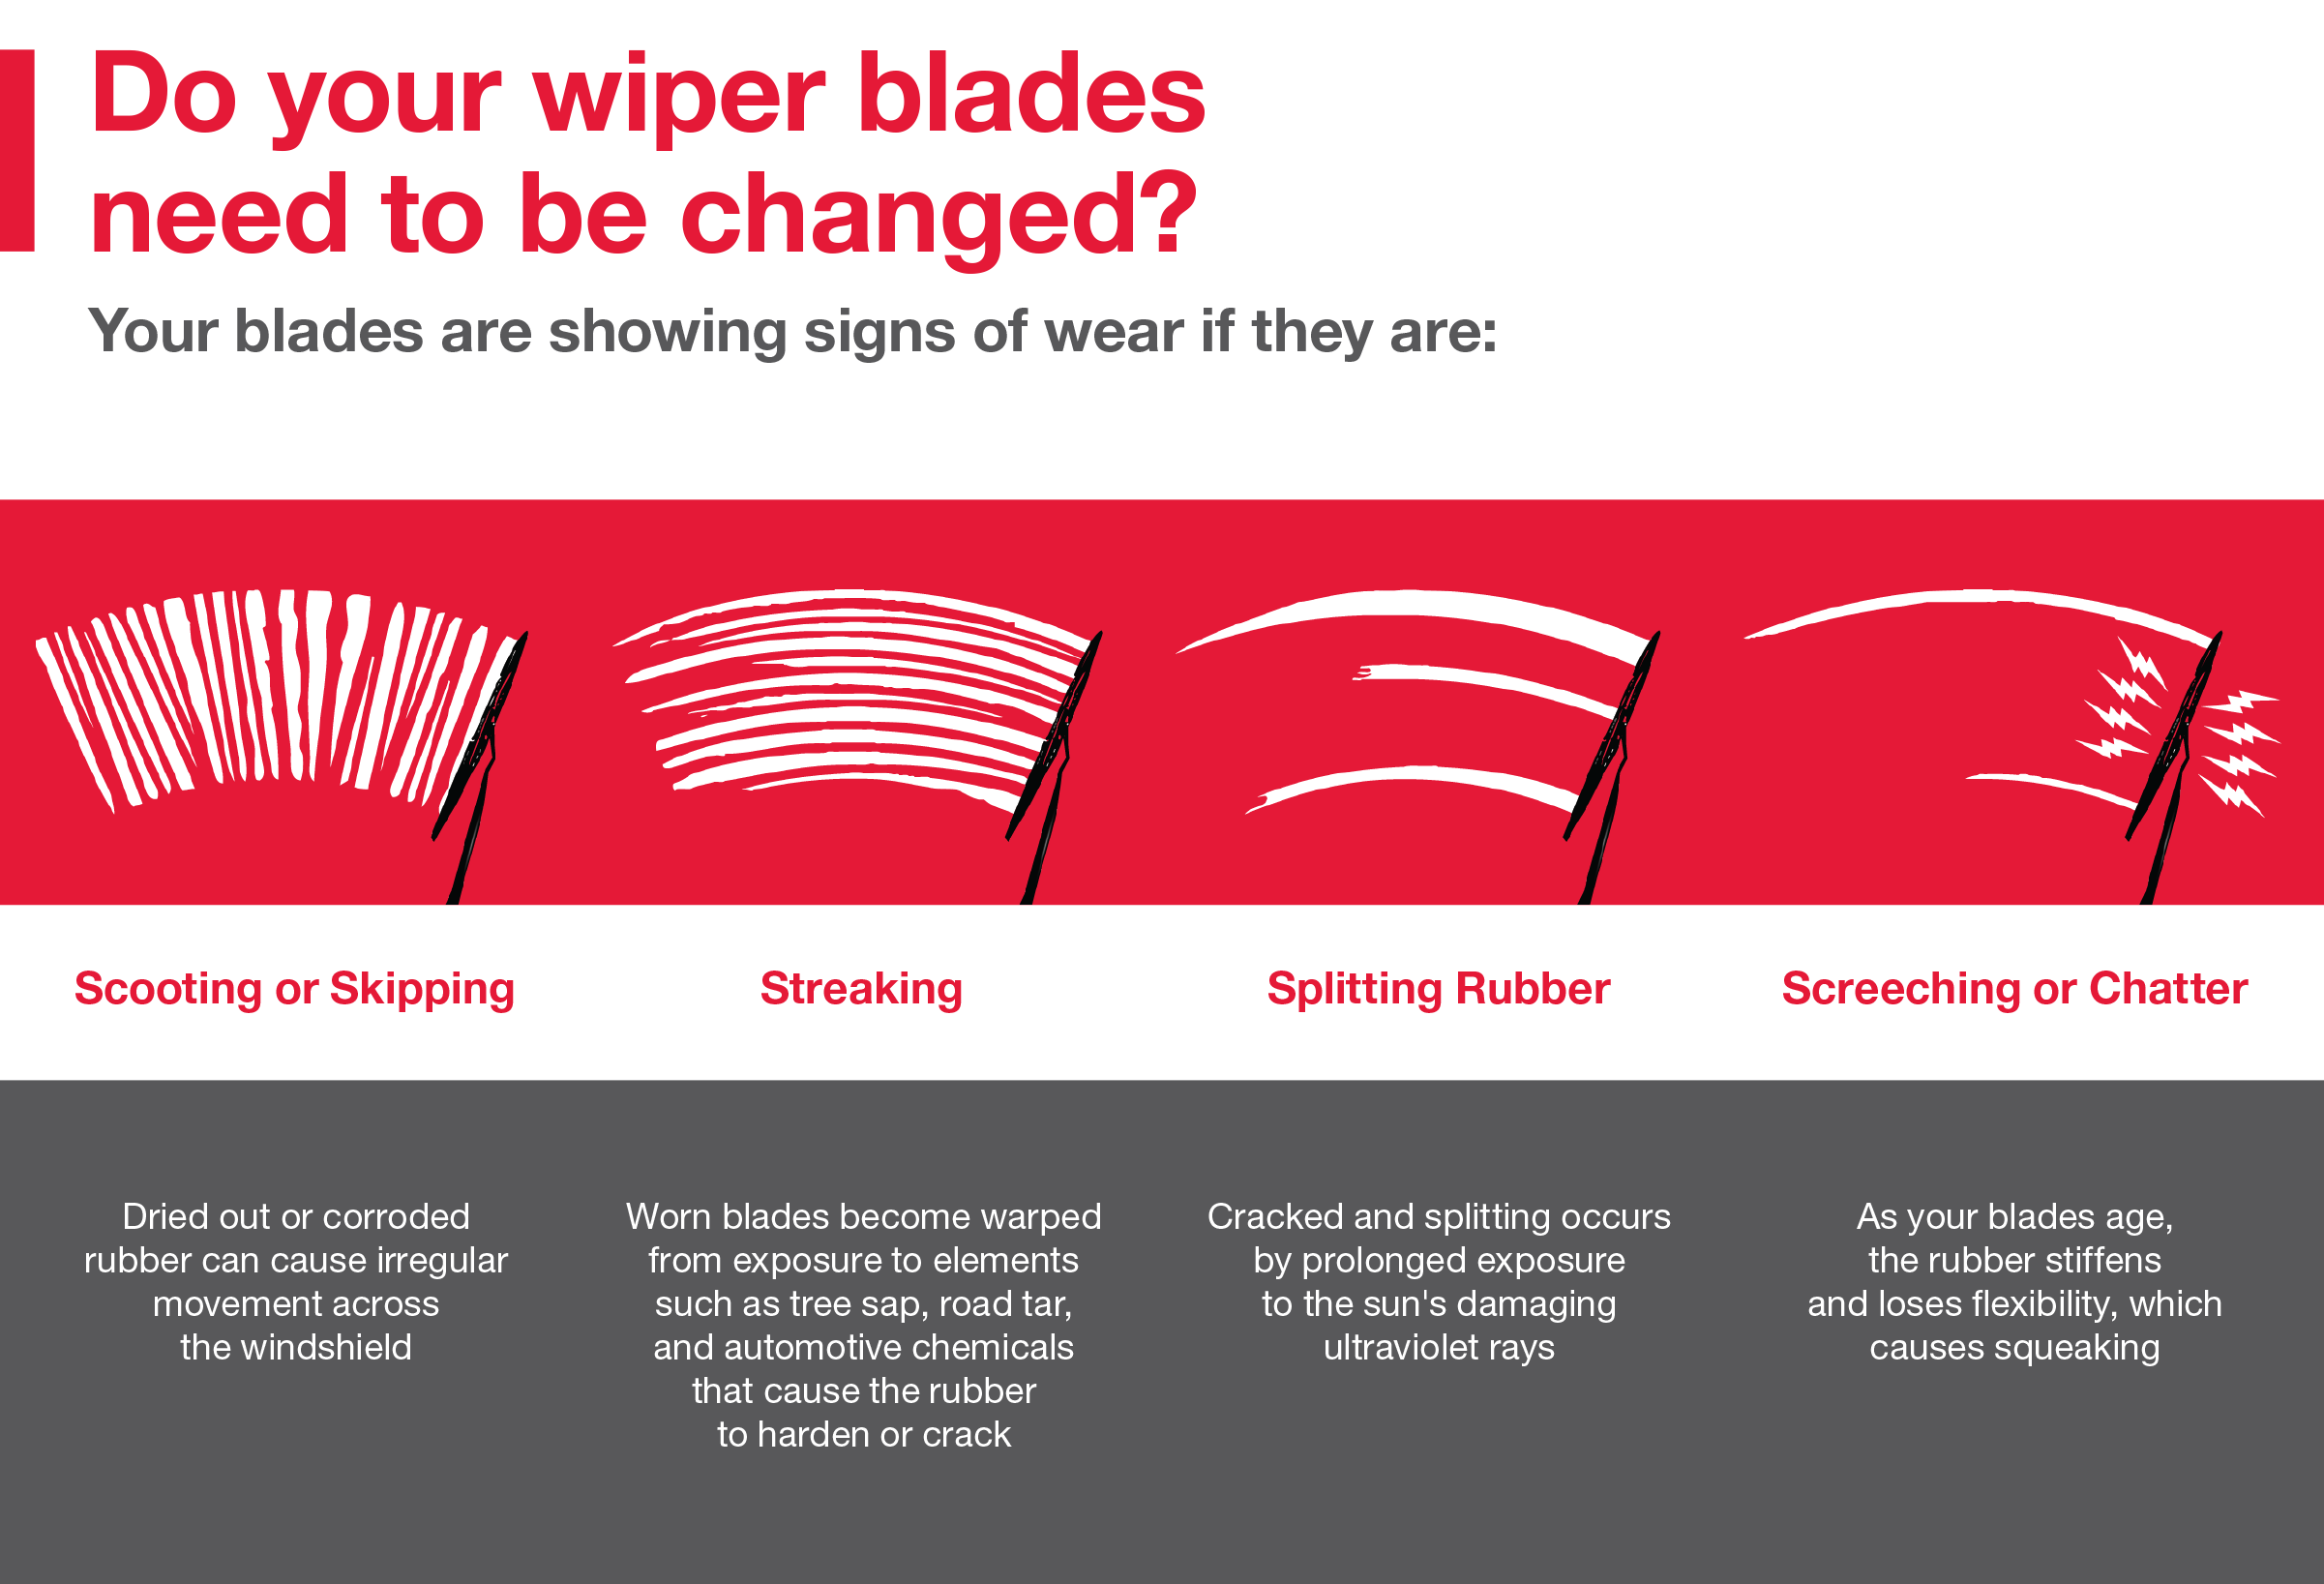 Do your wiper blades need to be changed? Call your local dealer for more info: (414) 247-6538